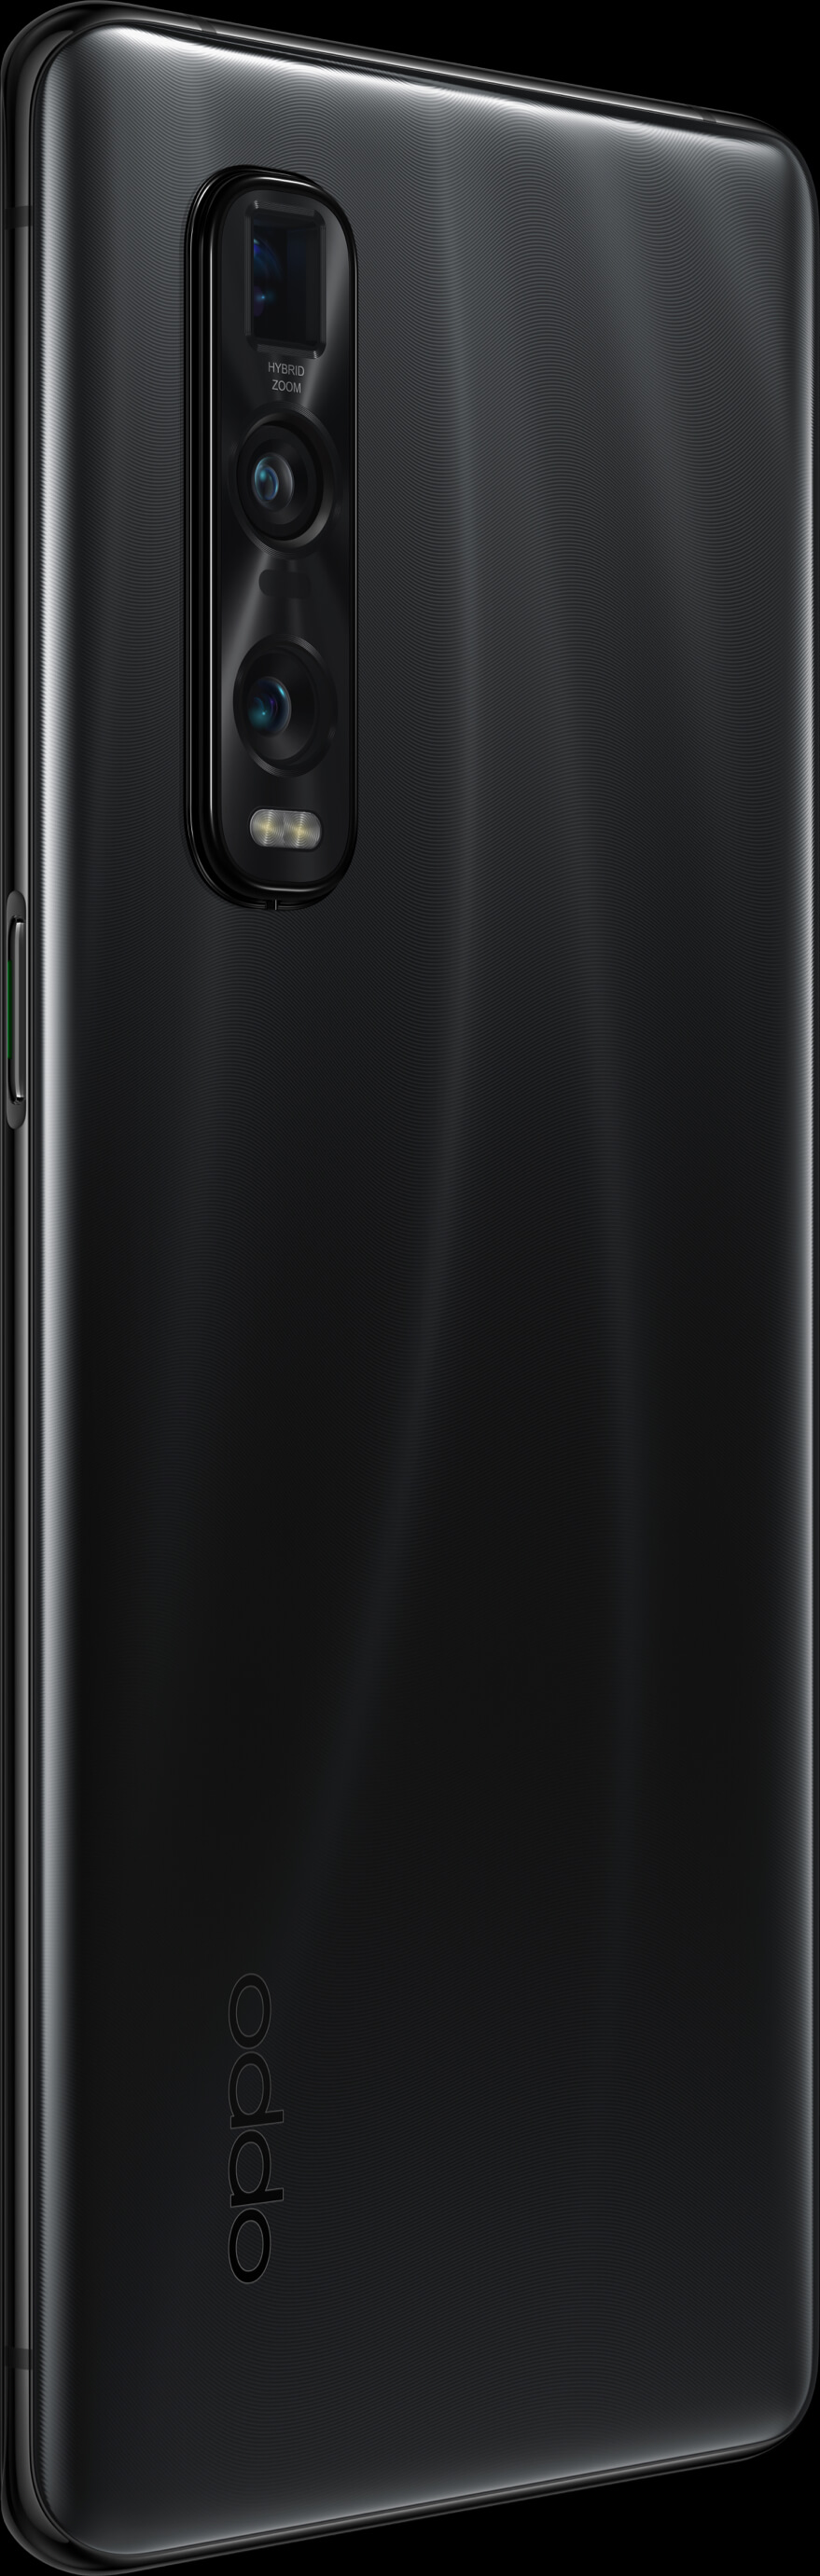 OPPO FIND X2 Pro Black Ceramic